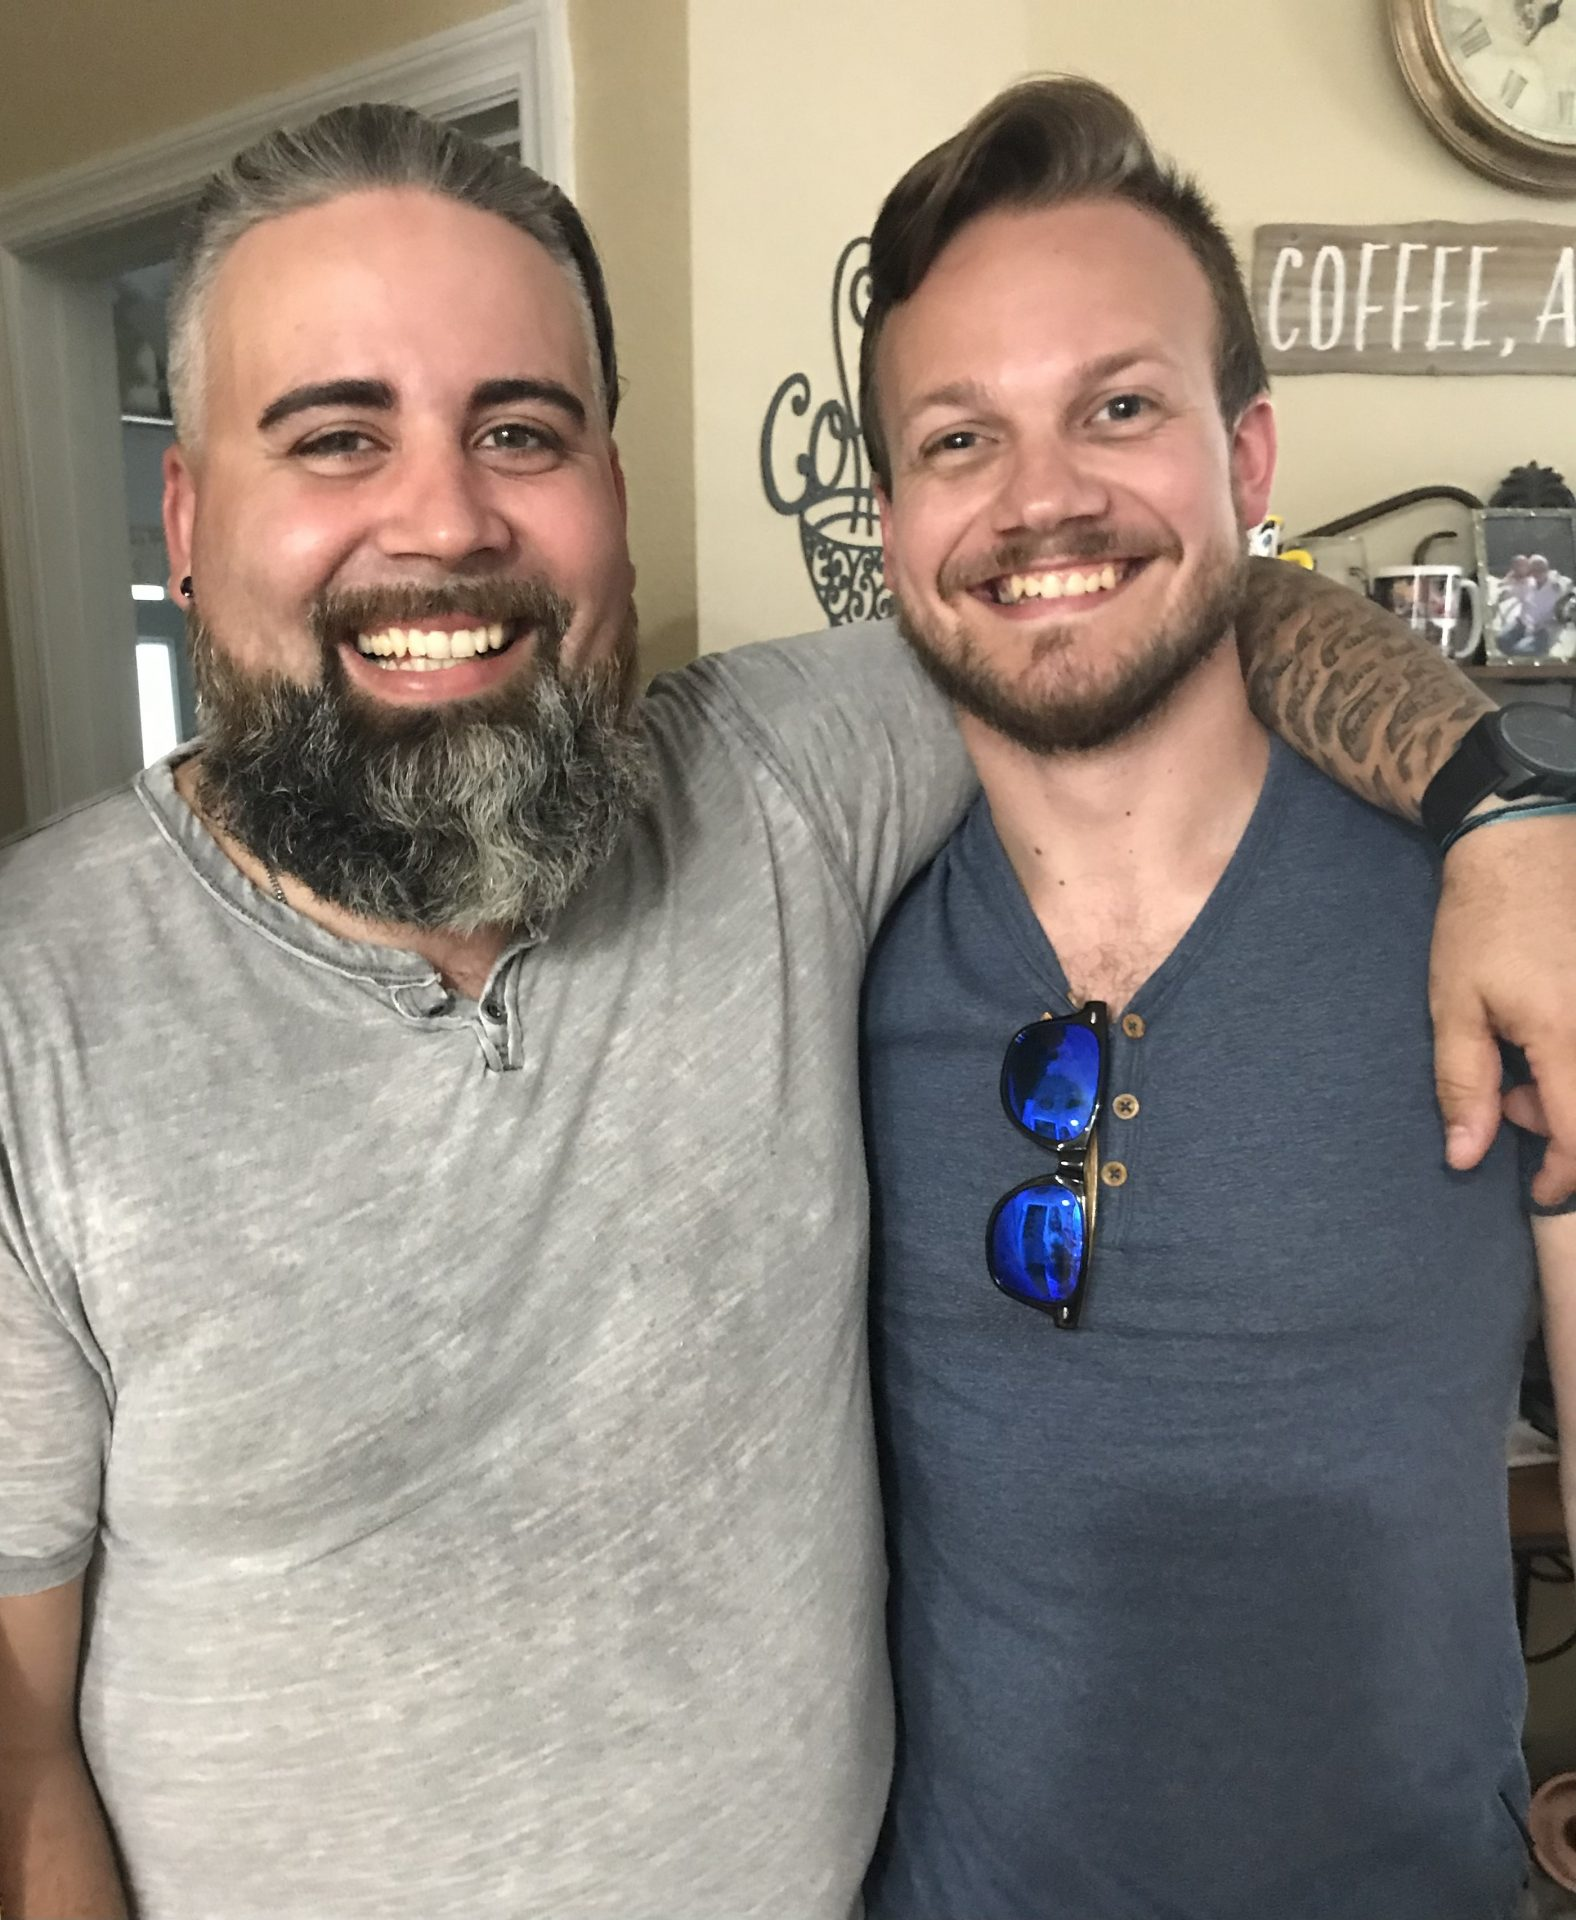 Taylor and Brent were so close and I'm so happy we all had a chance to reconnect. Very grateful for the memories we created and all the laughs we shared. We love and miss you very much Brent! <3